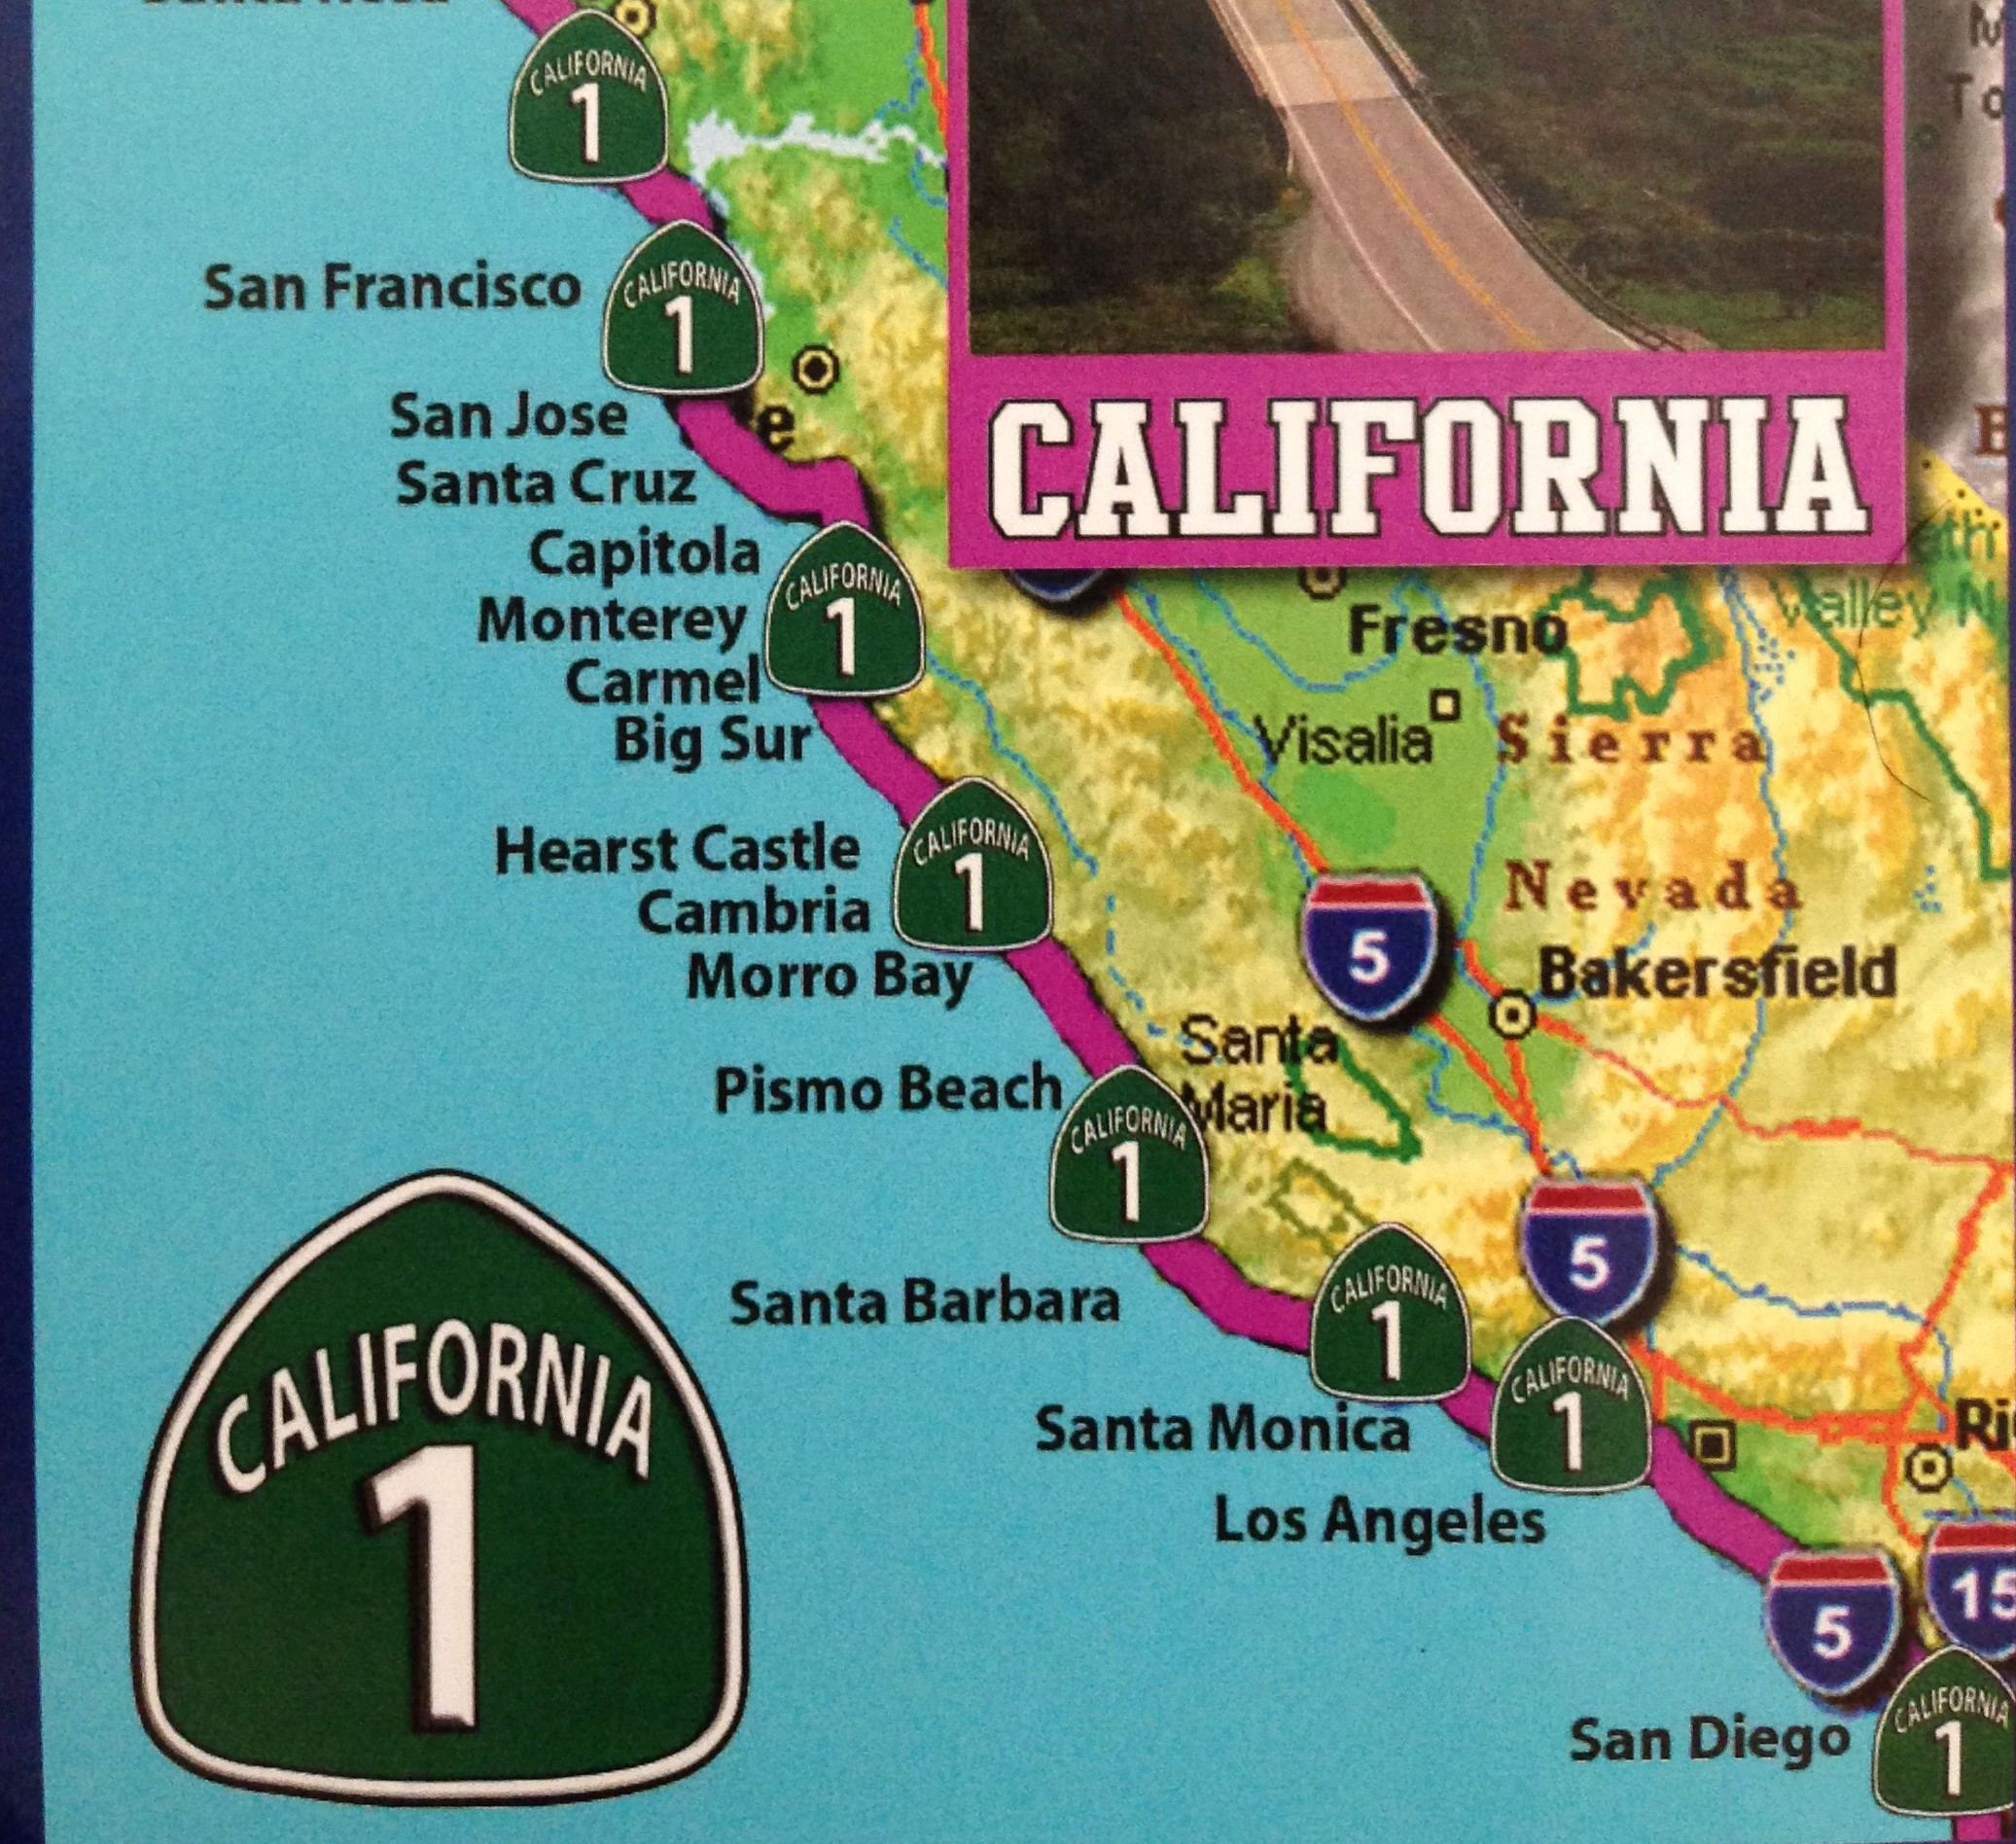 California Map Coastal Drive.Can T Stay Put Csp California Coastin With Cat